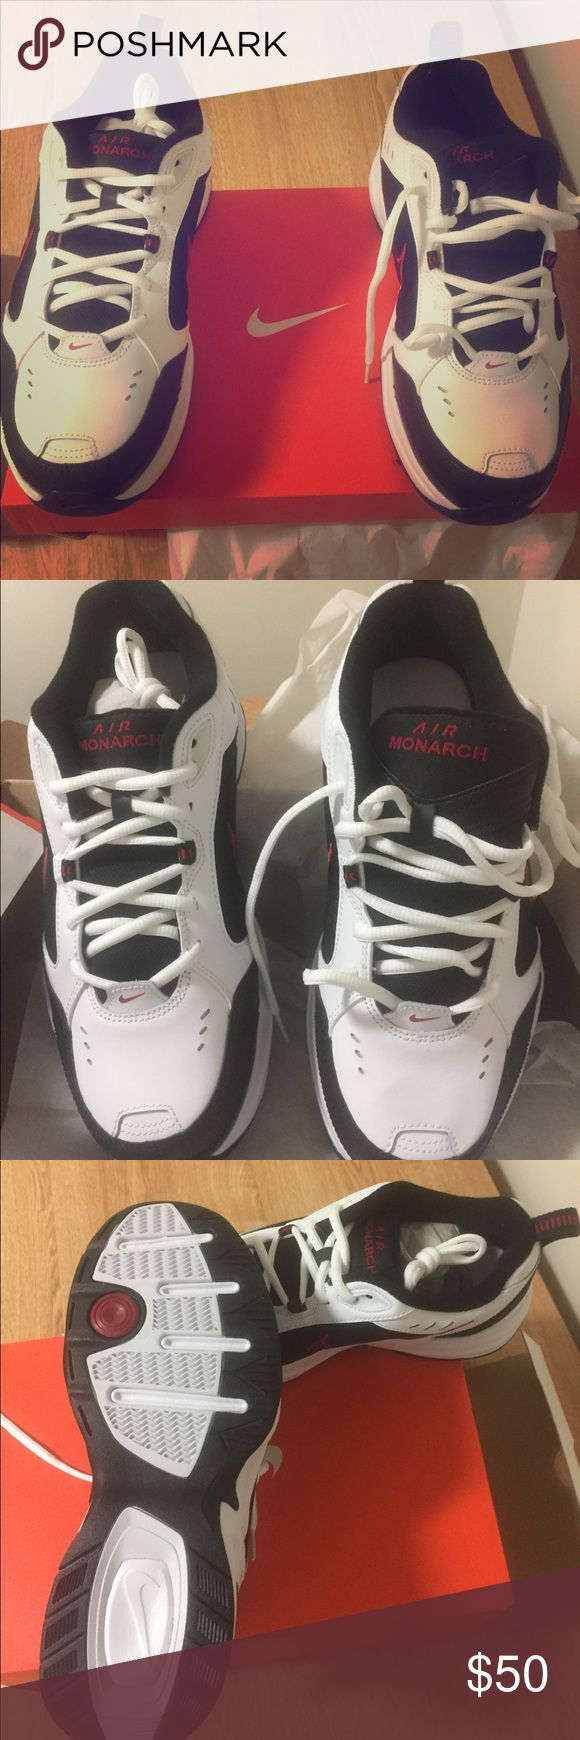 Nike Air Monarch. Never been worn New Nike Air Monarch comes with the box. Very comfortable and a good design Nike Shoes Sneakers